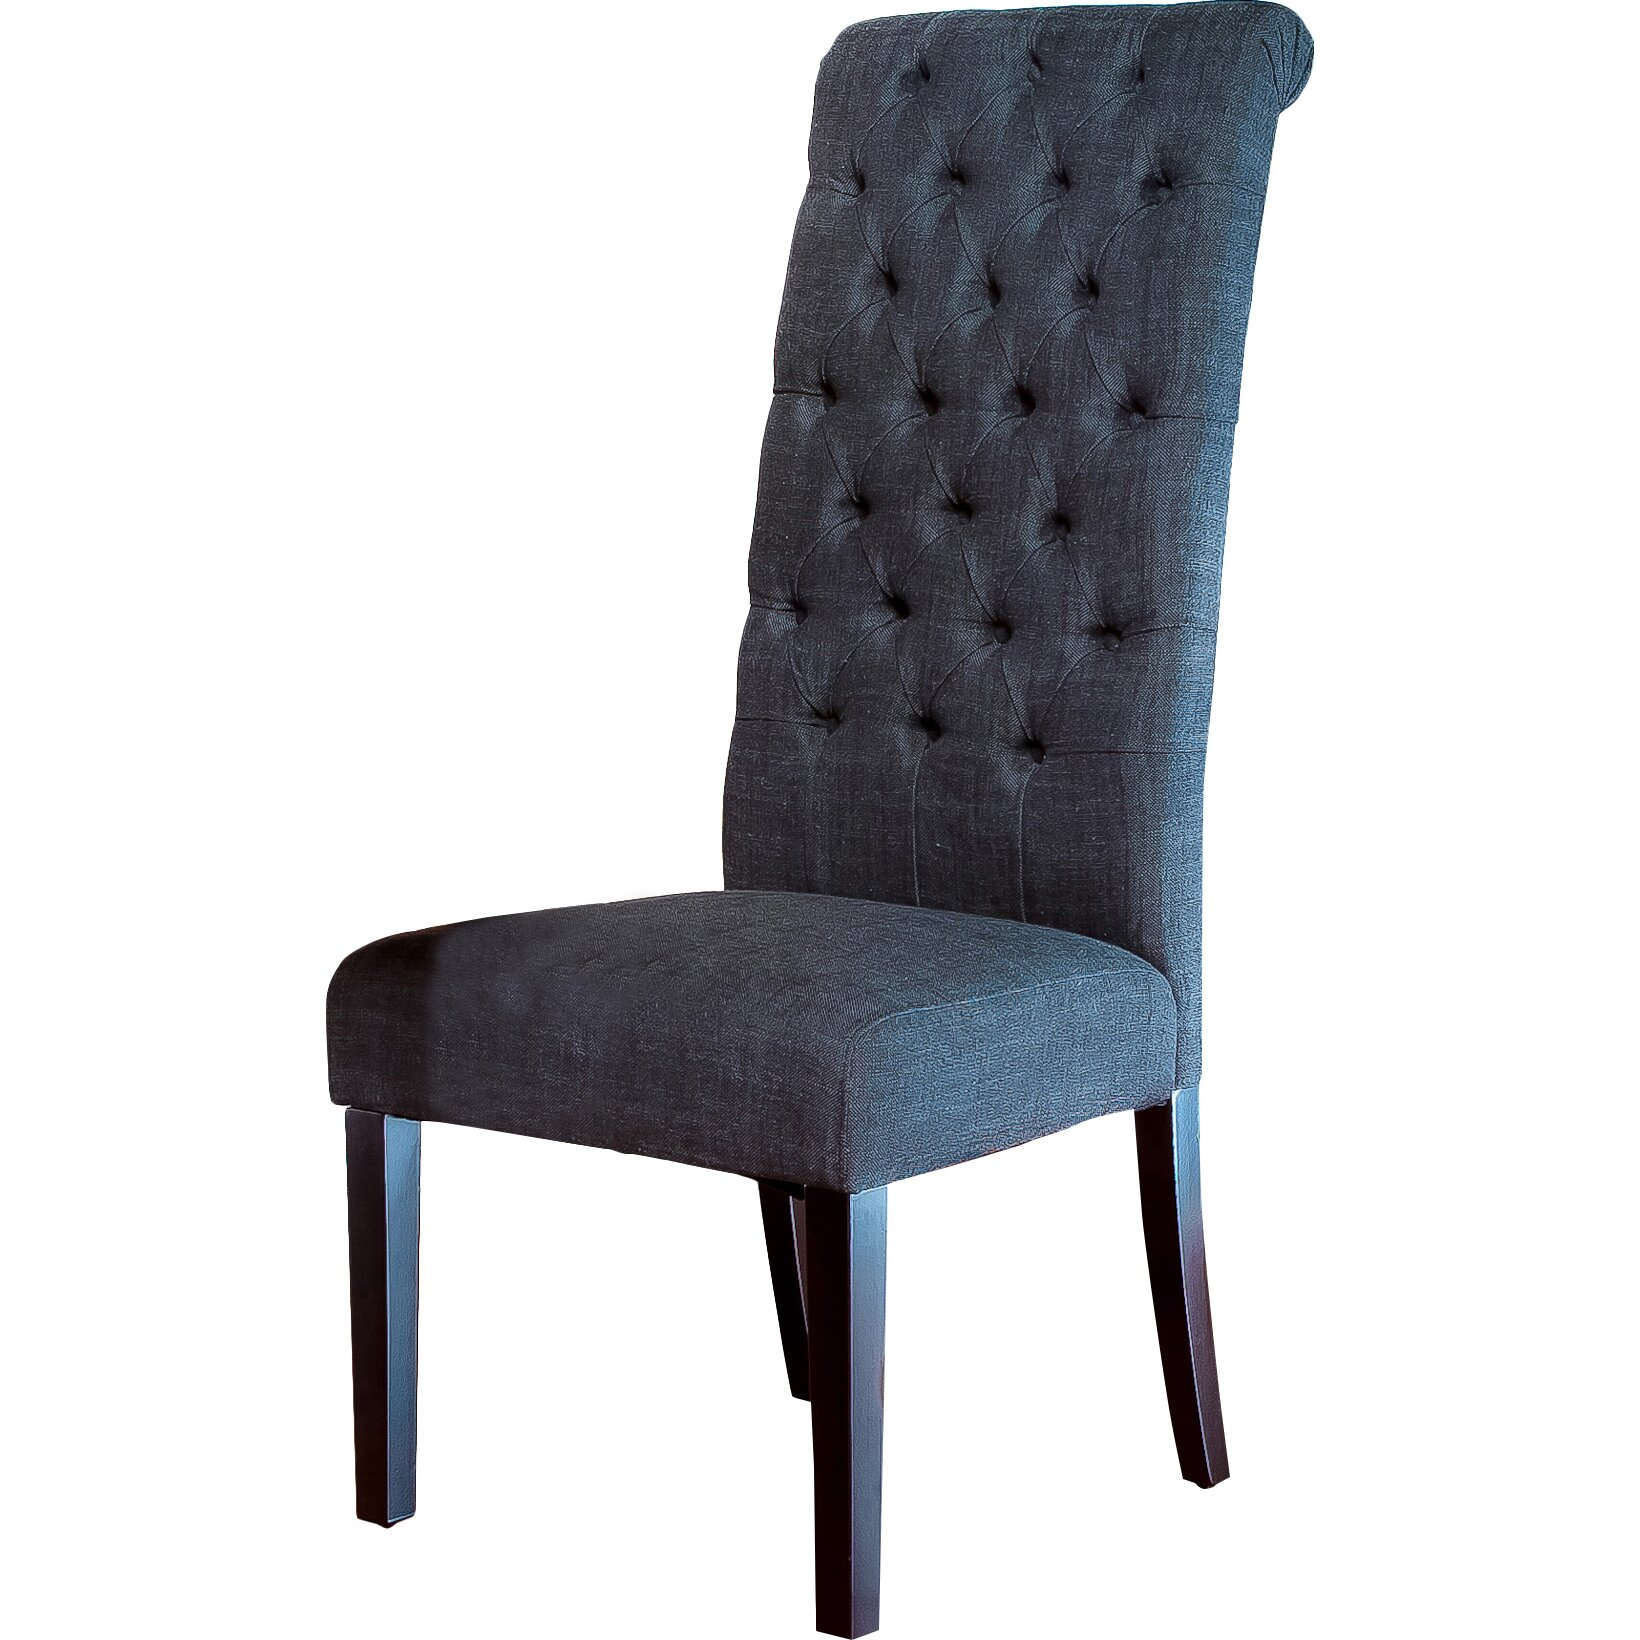 Charlton Home Estbury Tall Tufted Upholstered Dining Chair  : Estbury Tall Tufted Upholstered Dining Chair CHLH1995 from www.wayfair.com size 1640 x 1640 jpeg 386kB